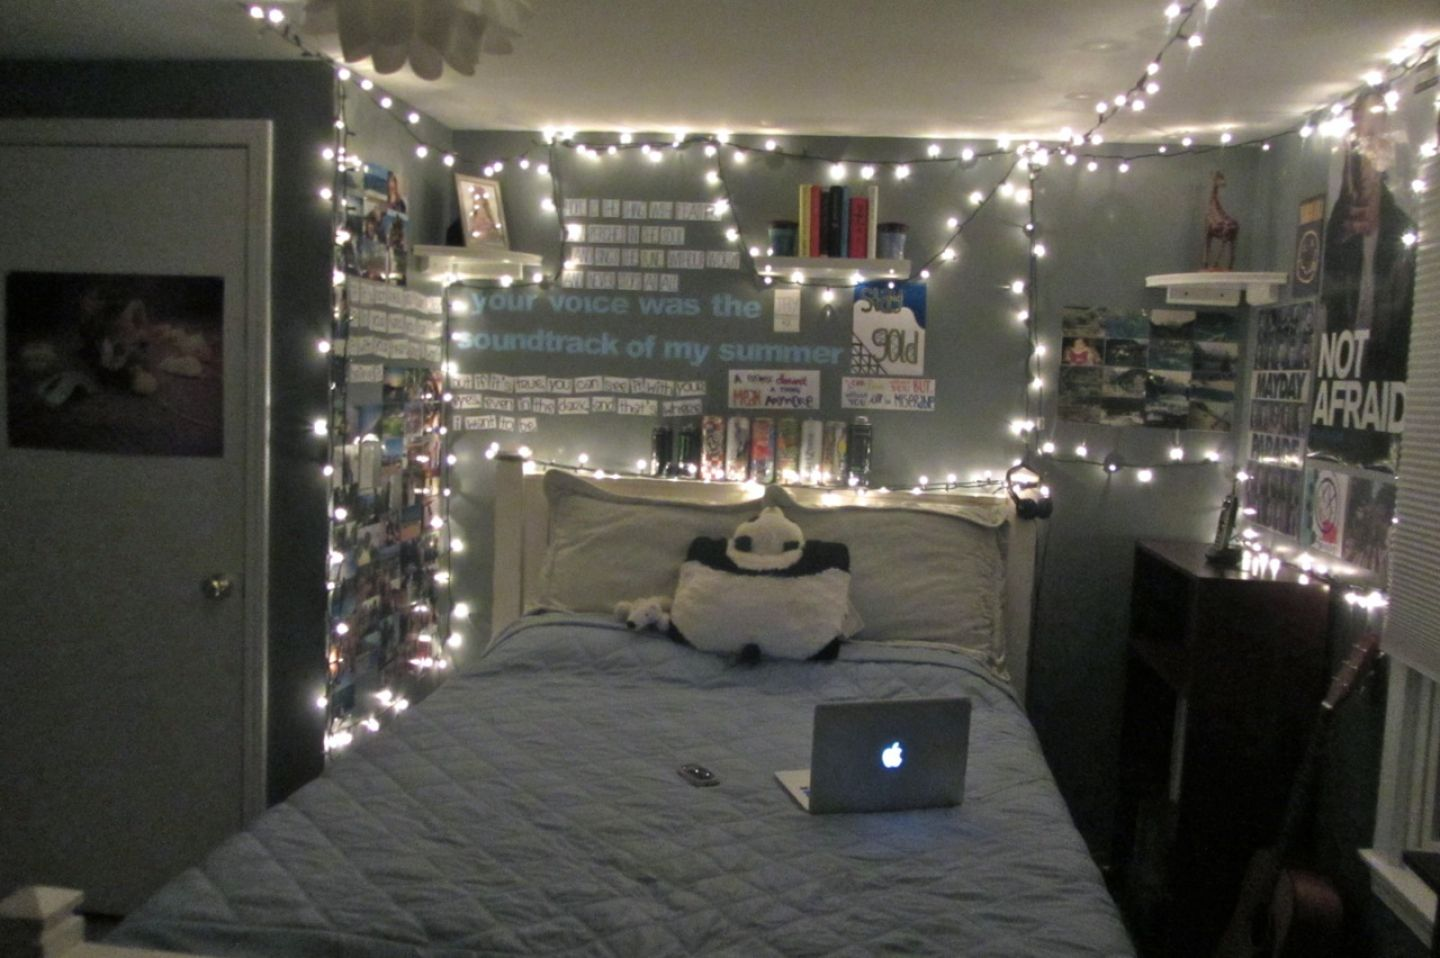 Awesome bedroom tumblr - Bedroom Tumblr Girl Bedrooms With Awesome Light And Imac On The Bed Cool Bedrooms Tumblr Design